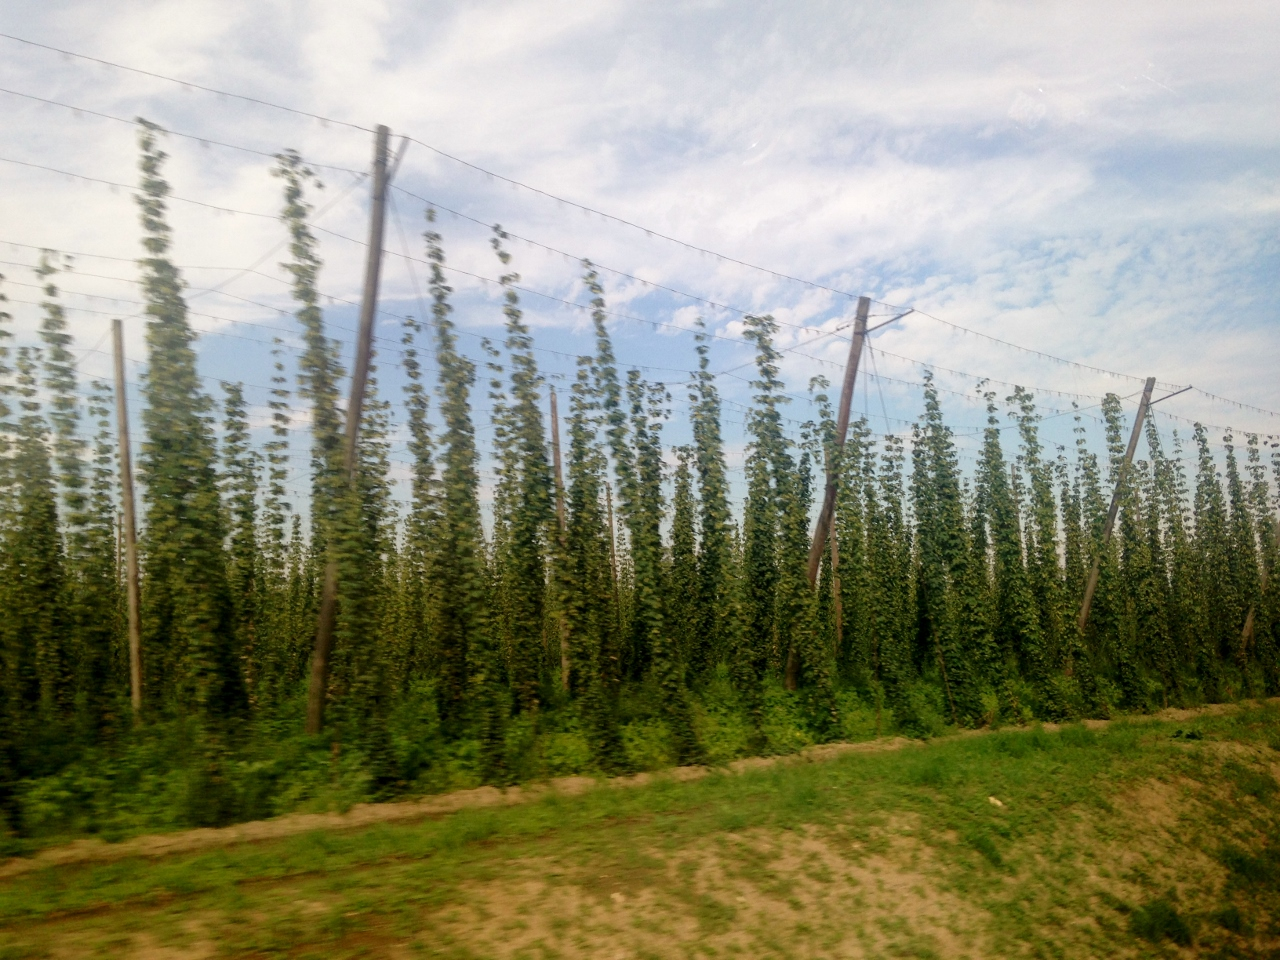 Hops growing all over the place in Bavaria.